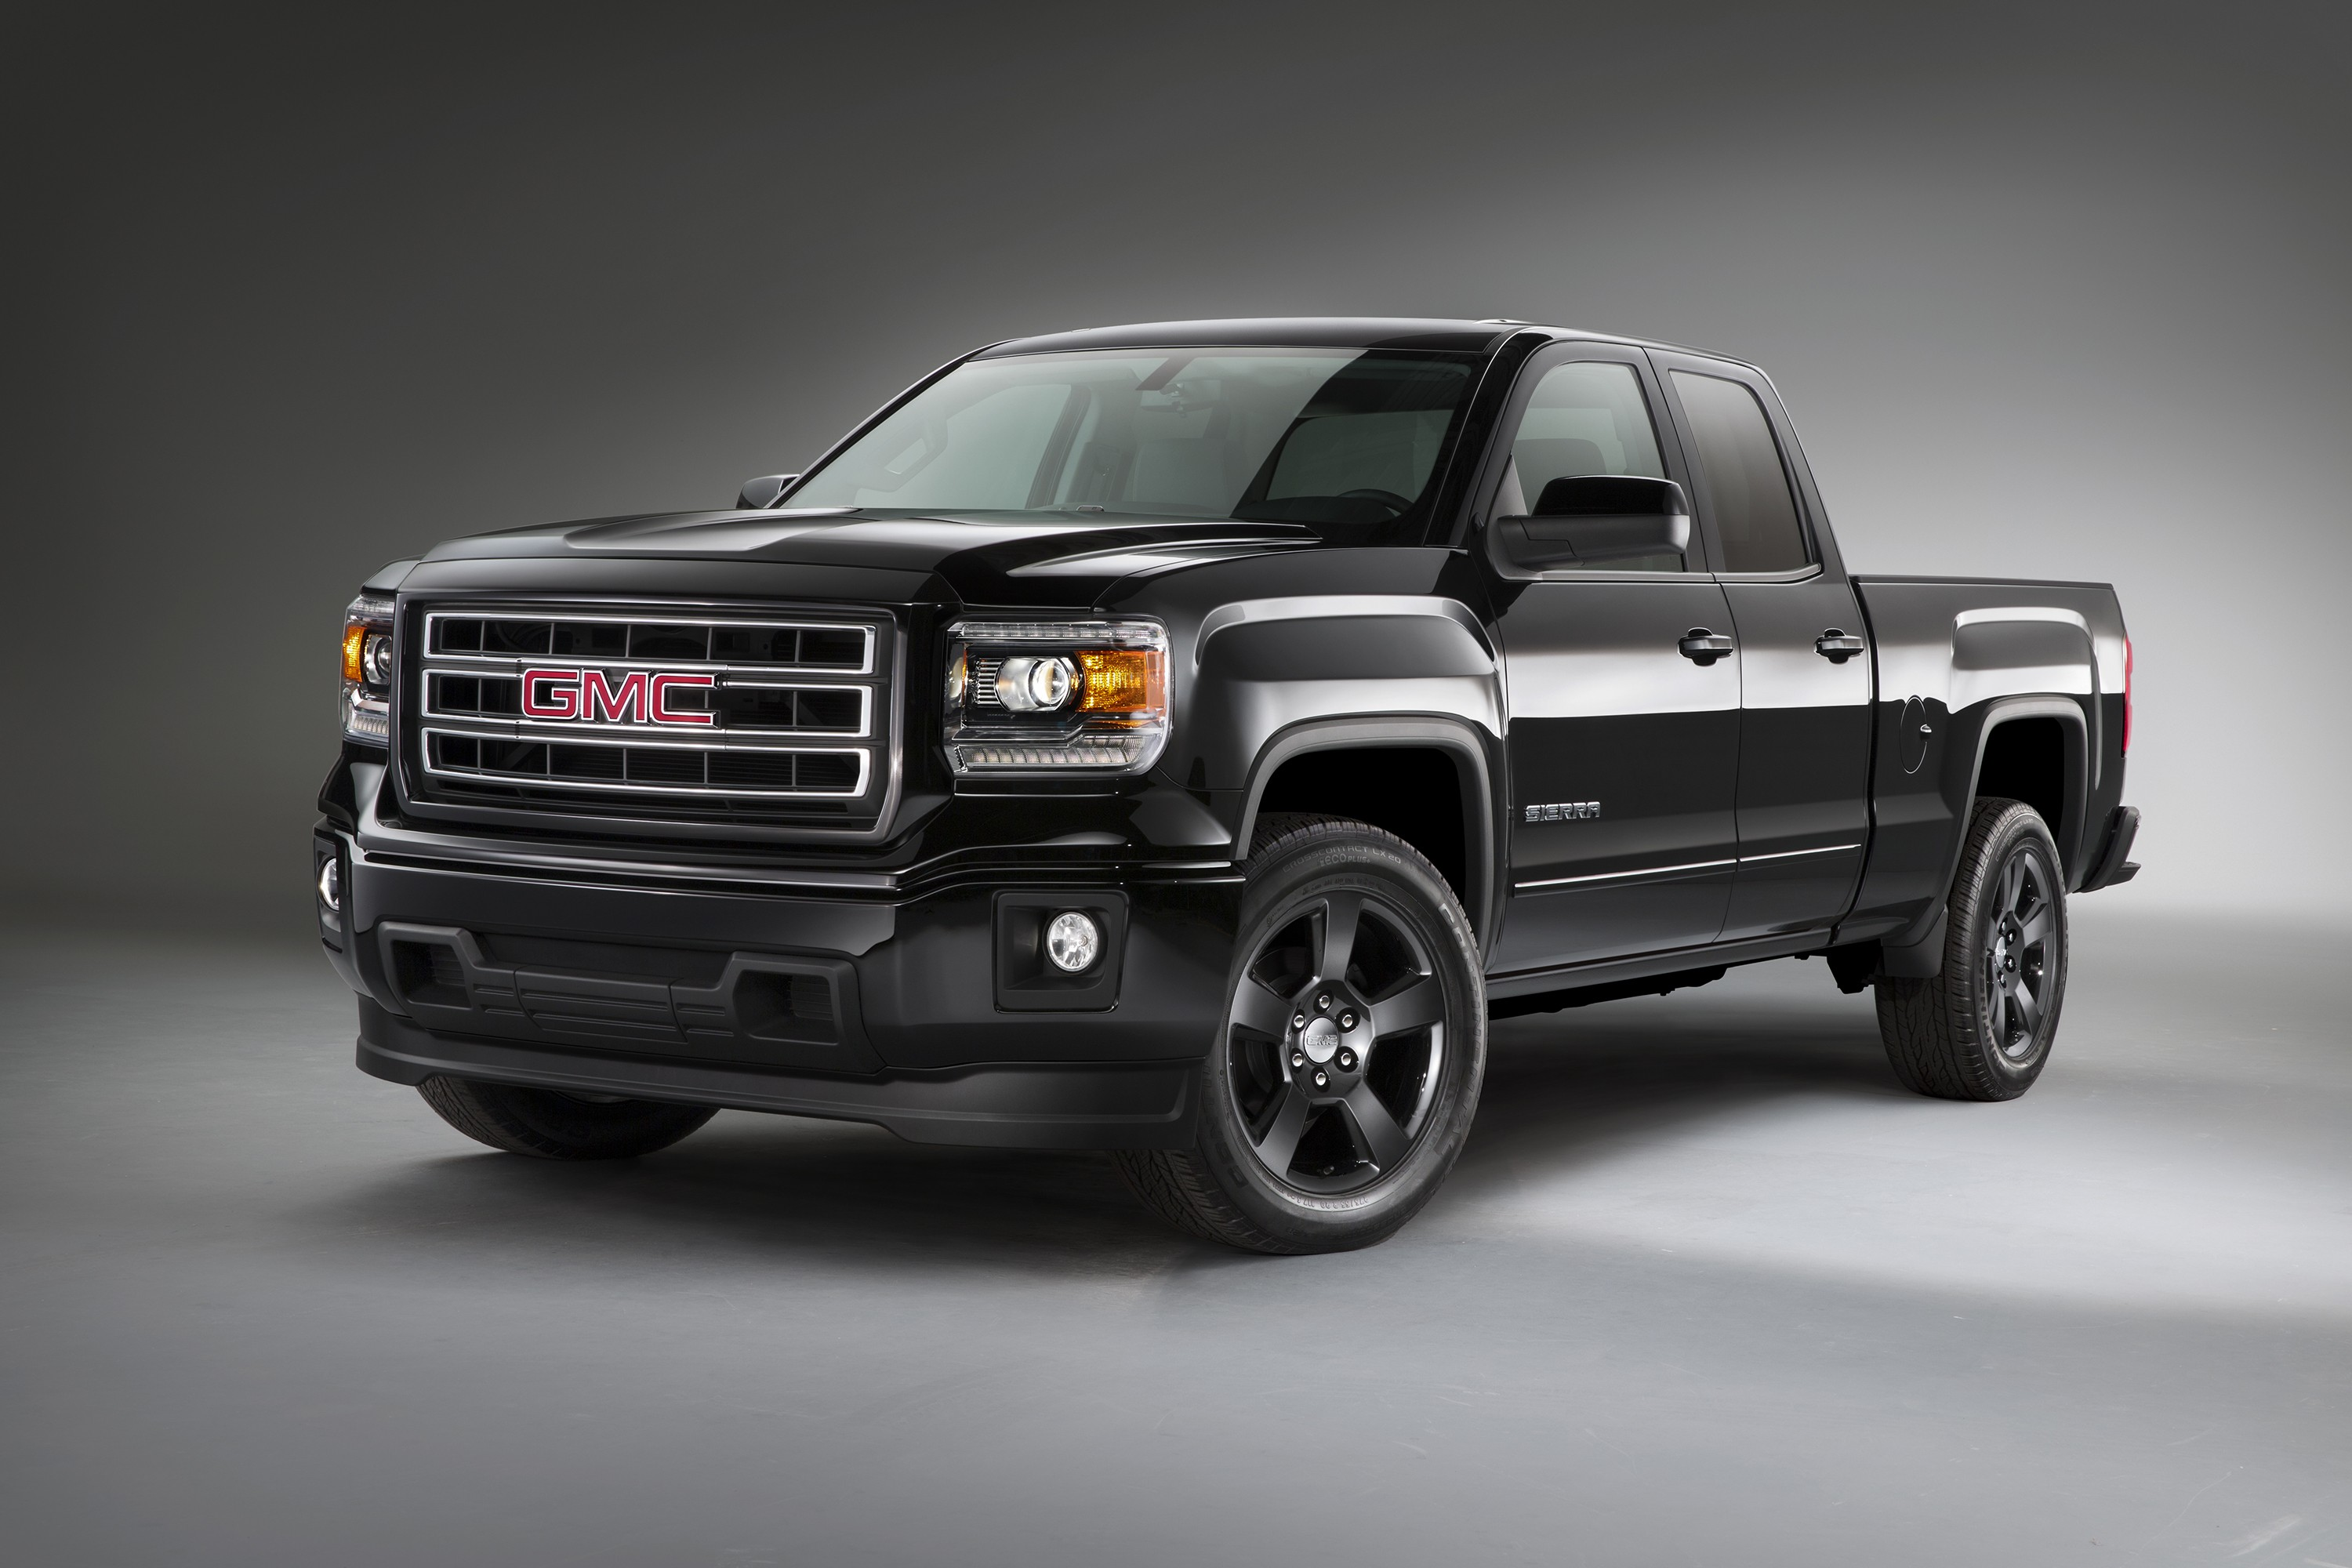 2015 gmc sierra elevation edition priced at 34 865 autoevolution. Black Bedroom Furniture Sets. Home Design Ideas